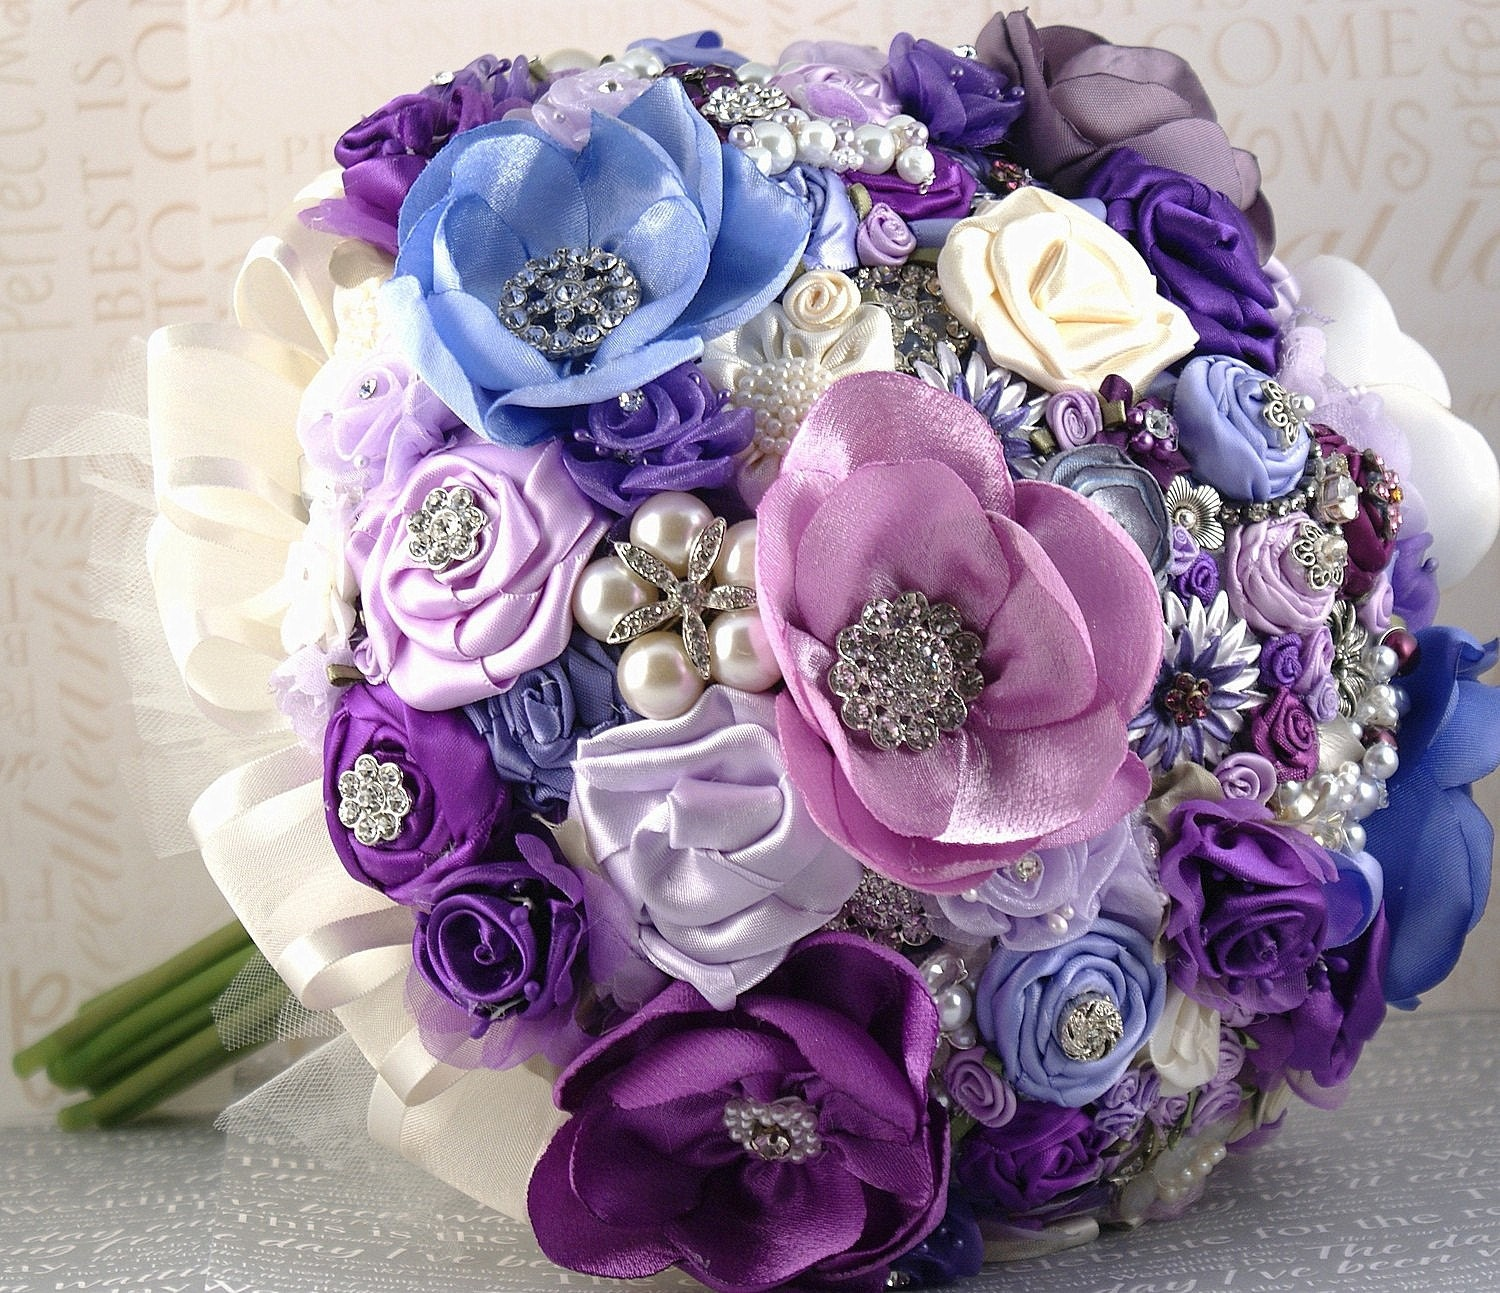 Brooch Bouquet Jeweled Bouquet Wedding Bouquet in Purple, Periwinkle, Lilac and Cream